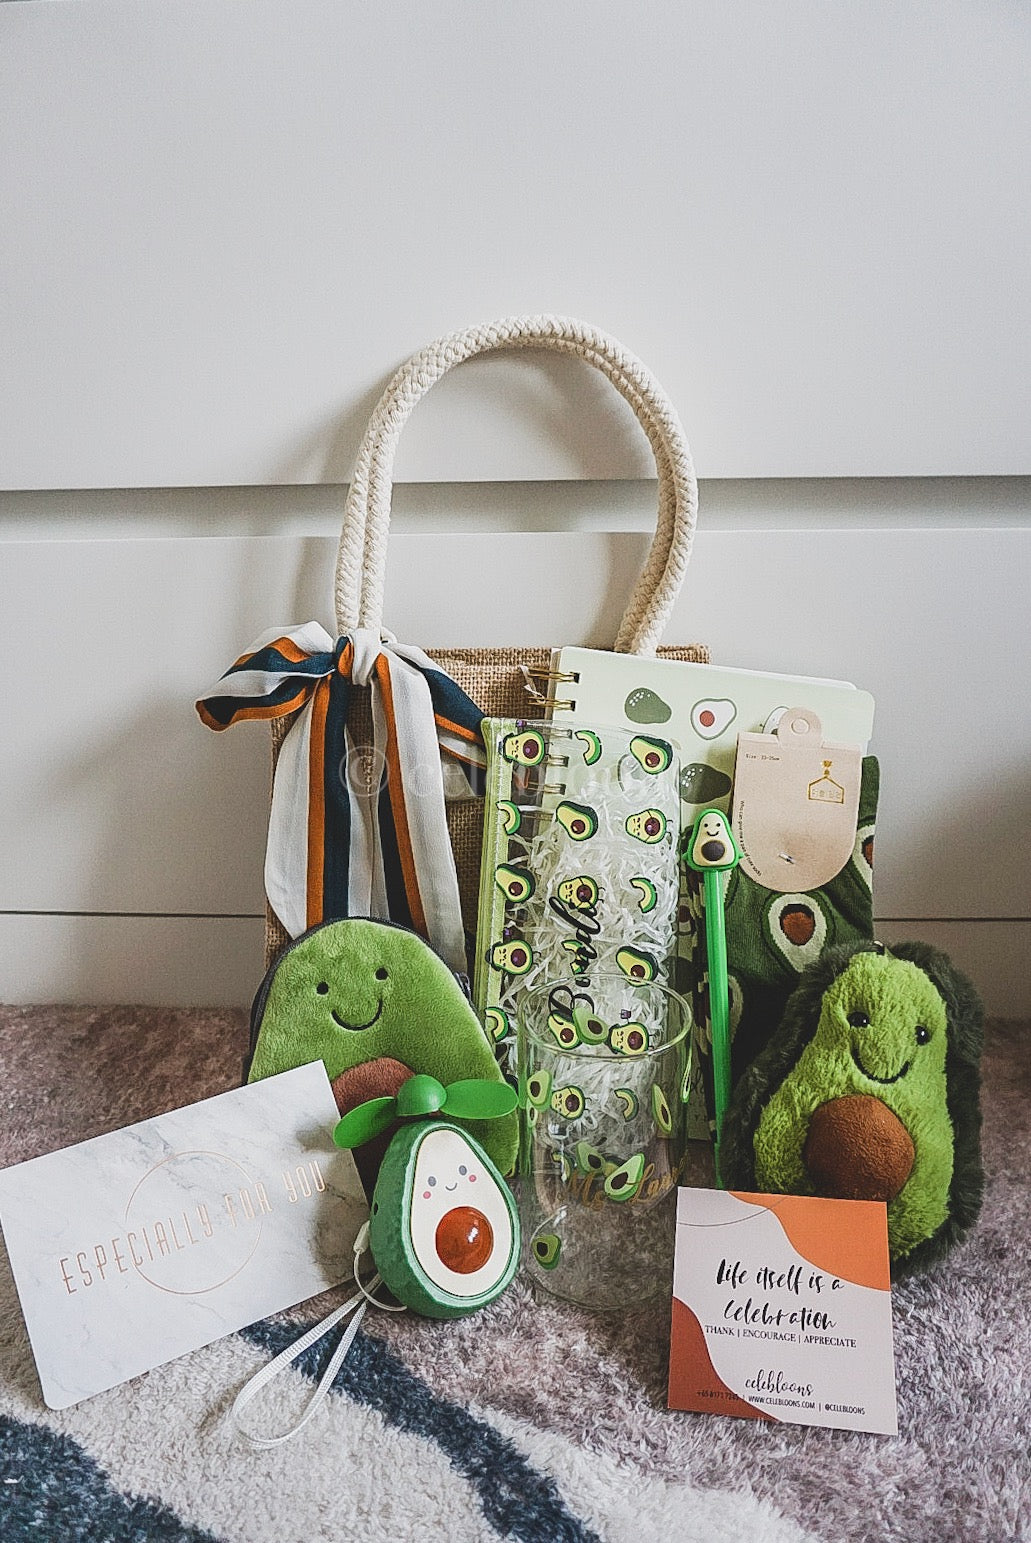 Avocado Special!: All-in Jute Bag Set